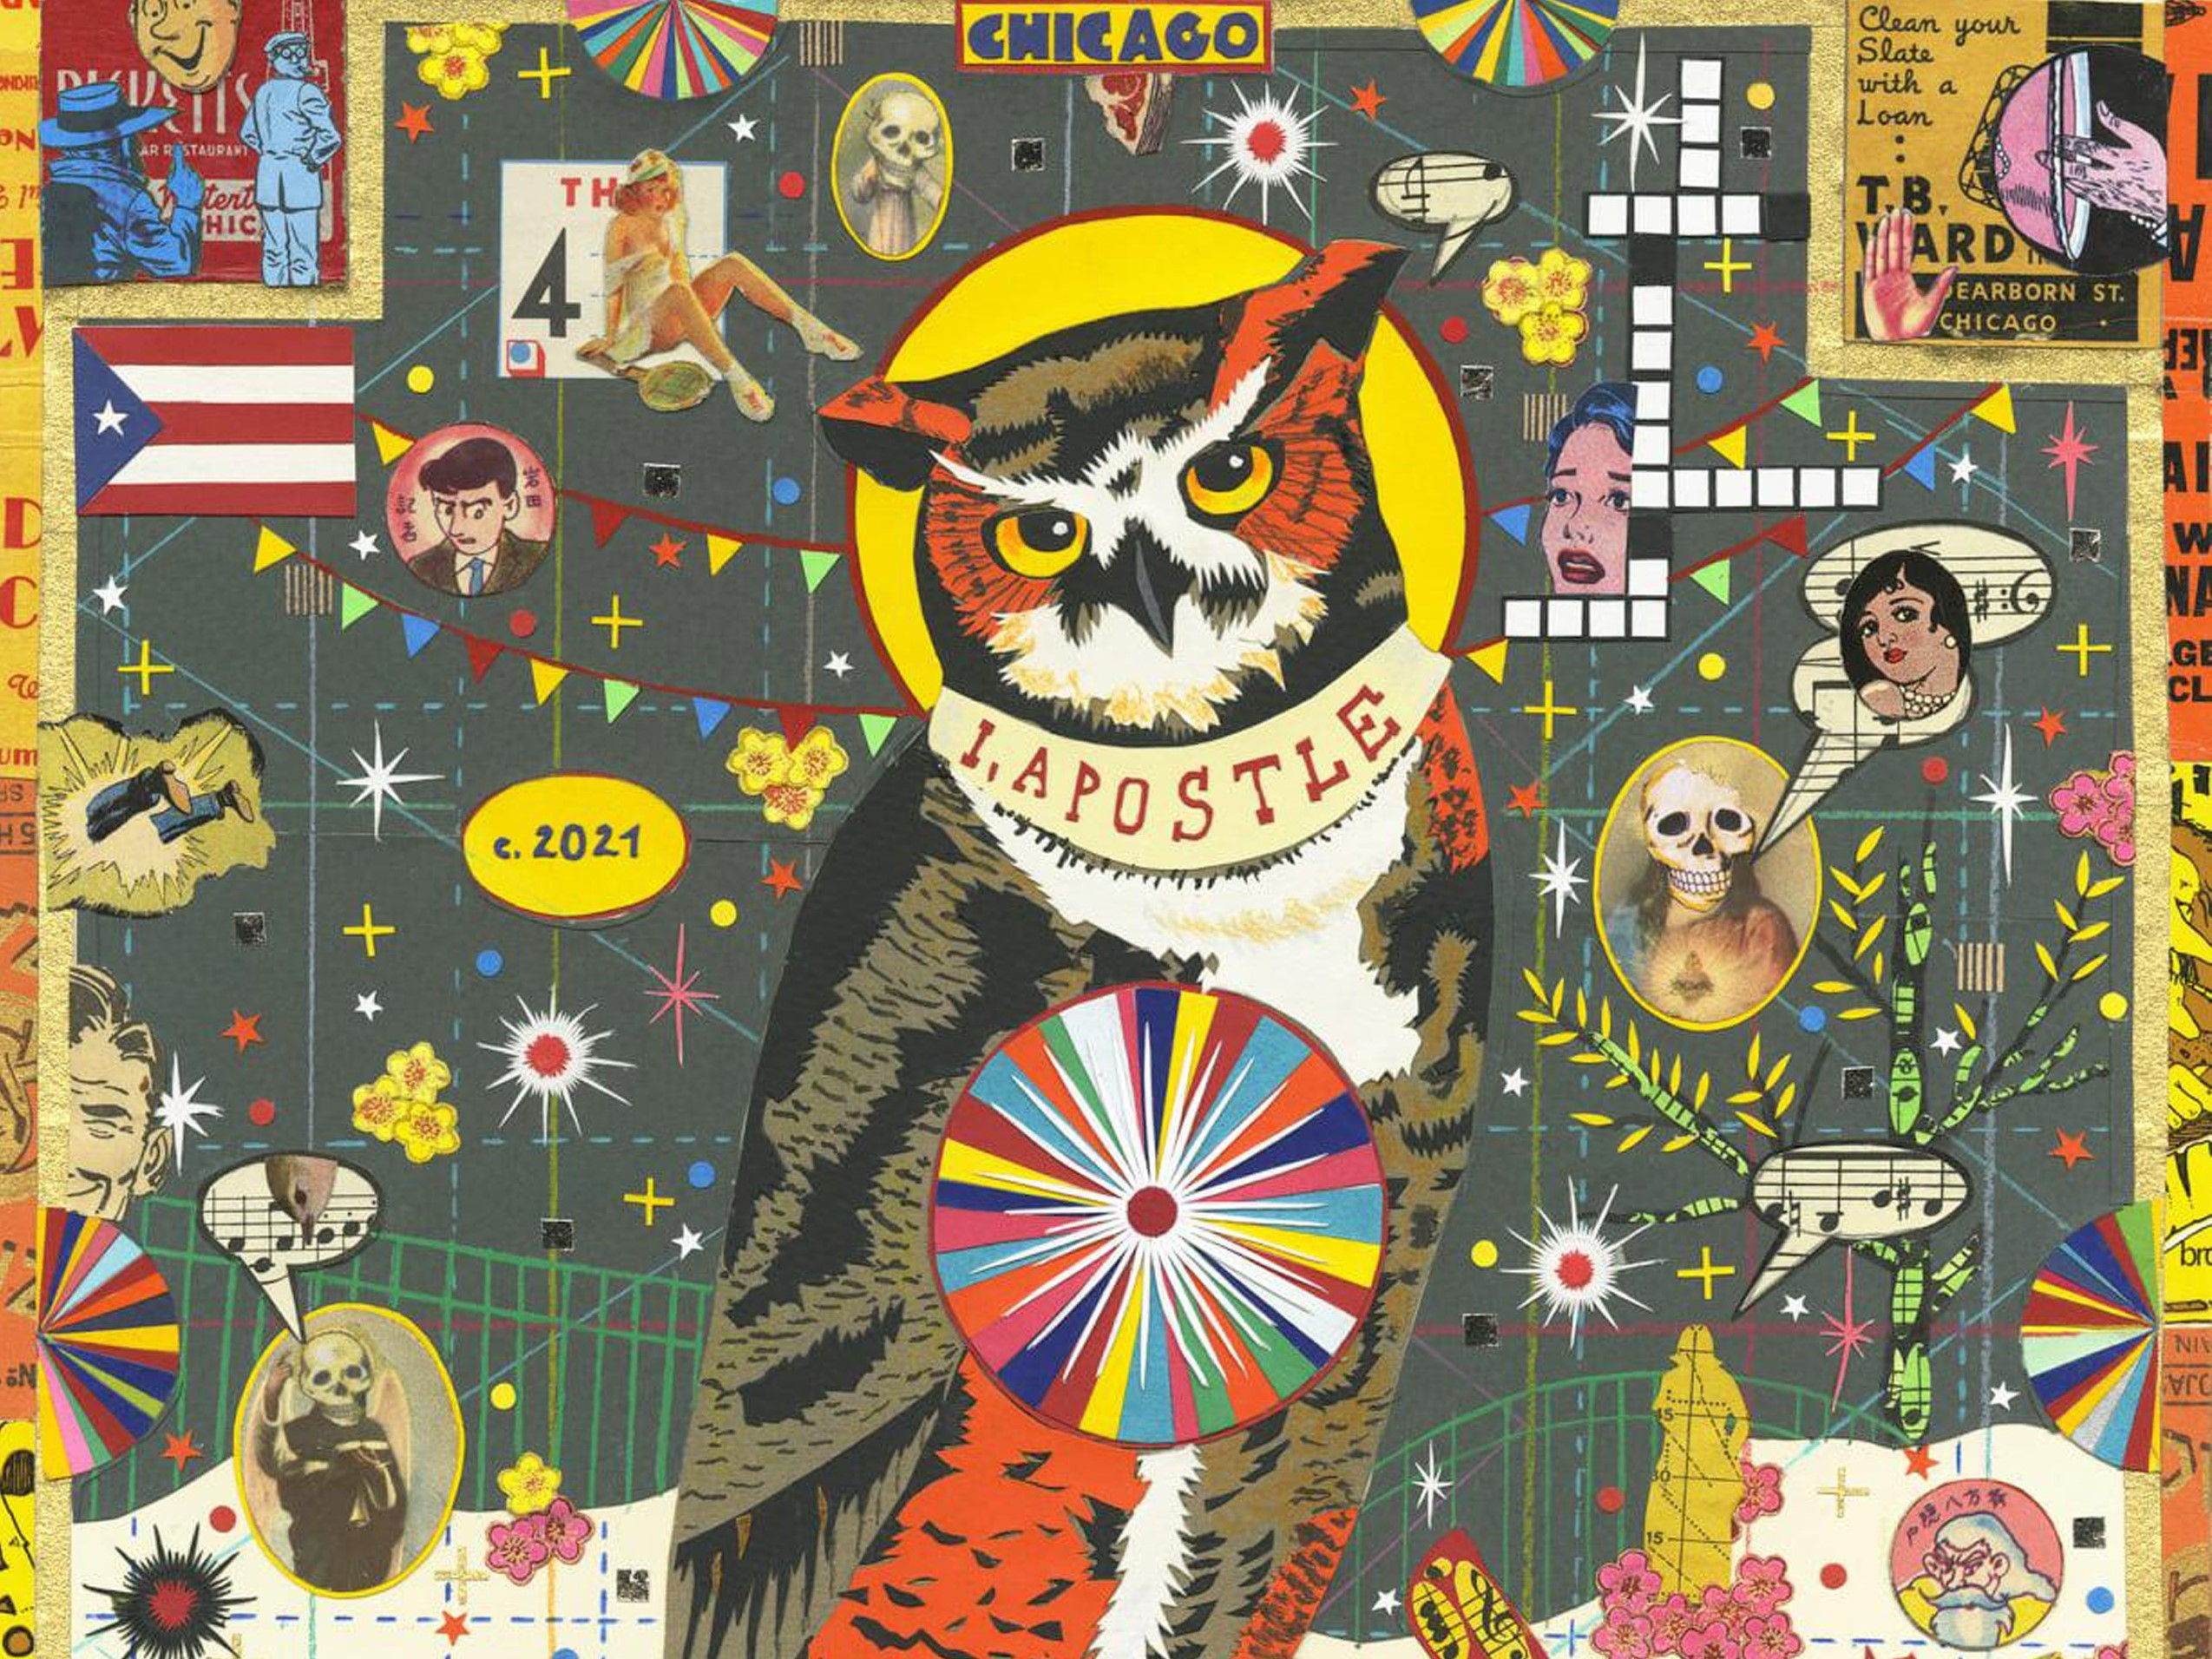 """A cropped view of Tony Fitzpatrick's """"The Watchman of Humboldt Park (I, Apostle)"""" Provided by Tony Fitzpatrick"""